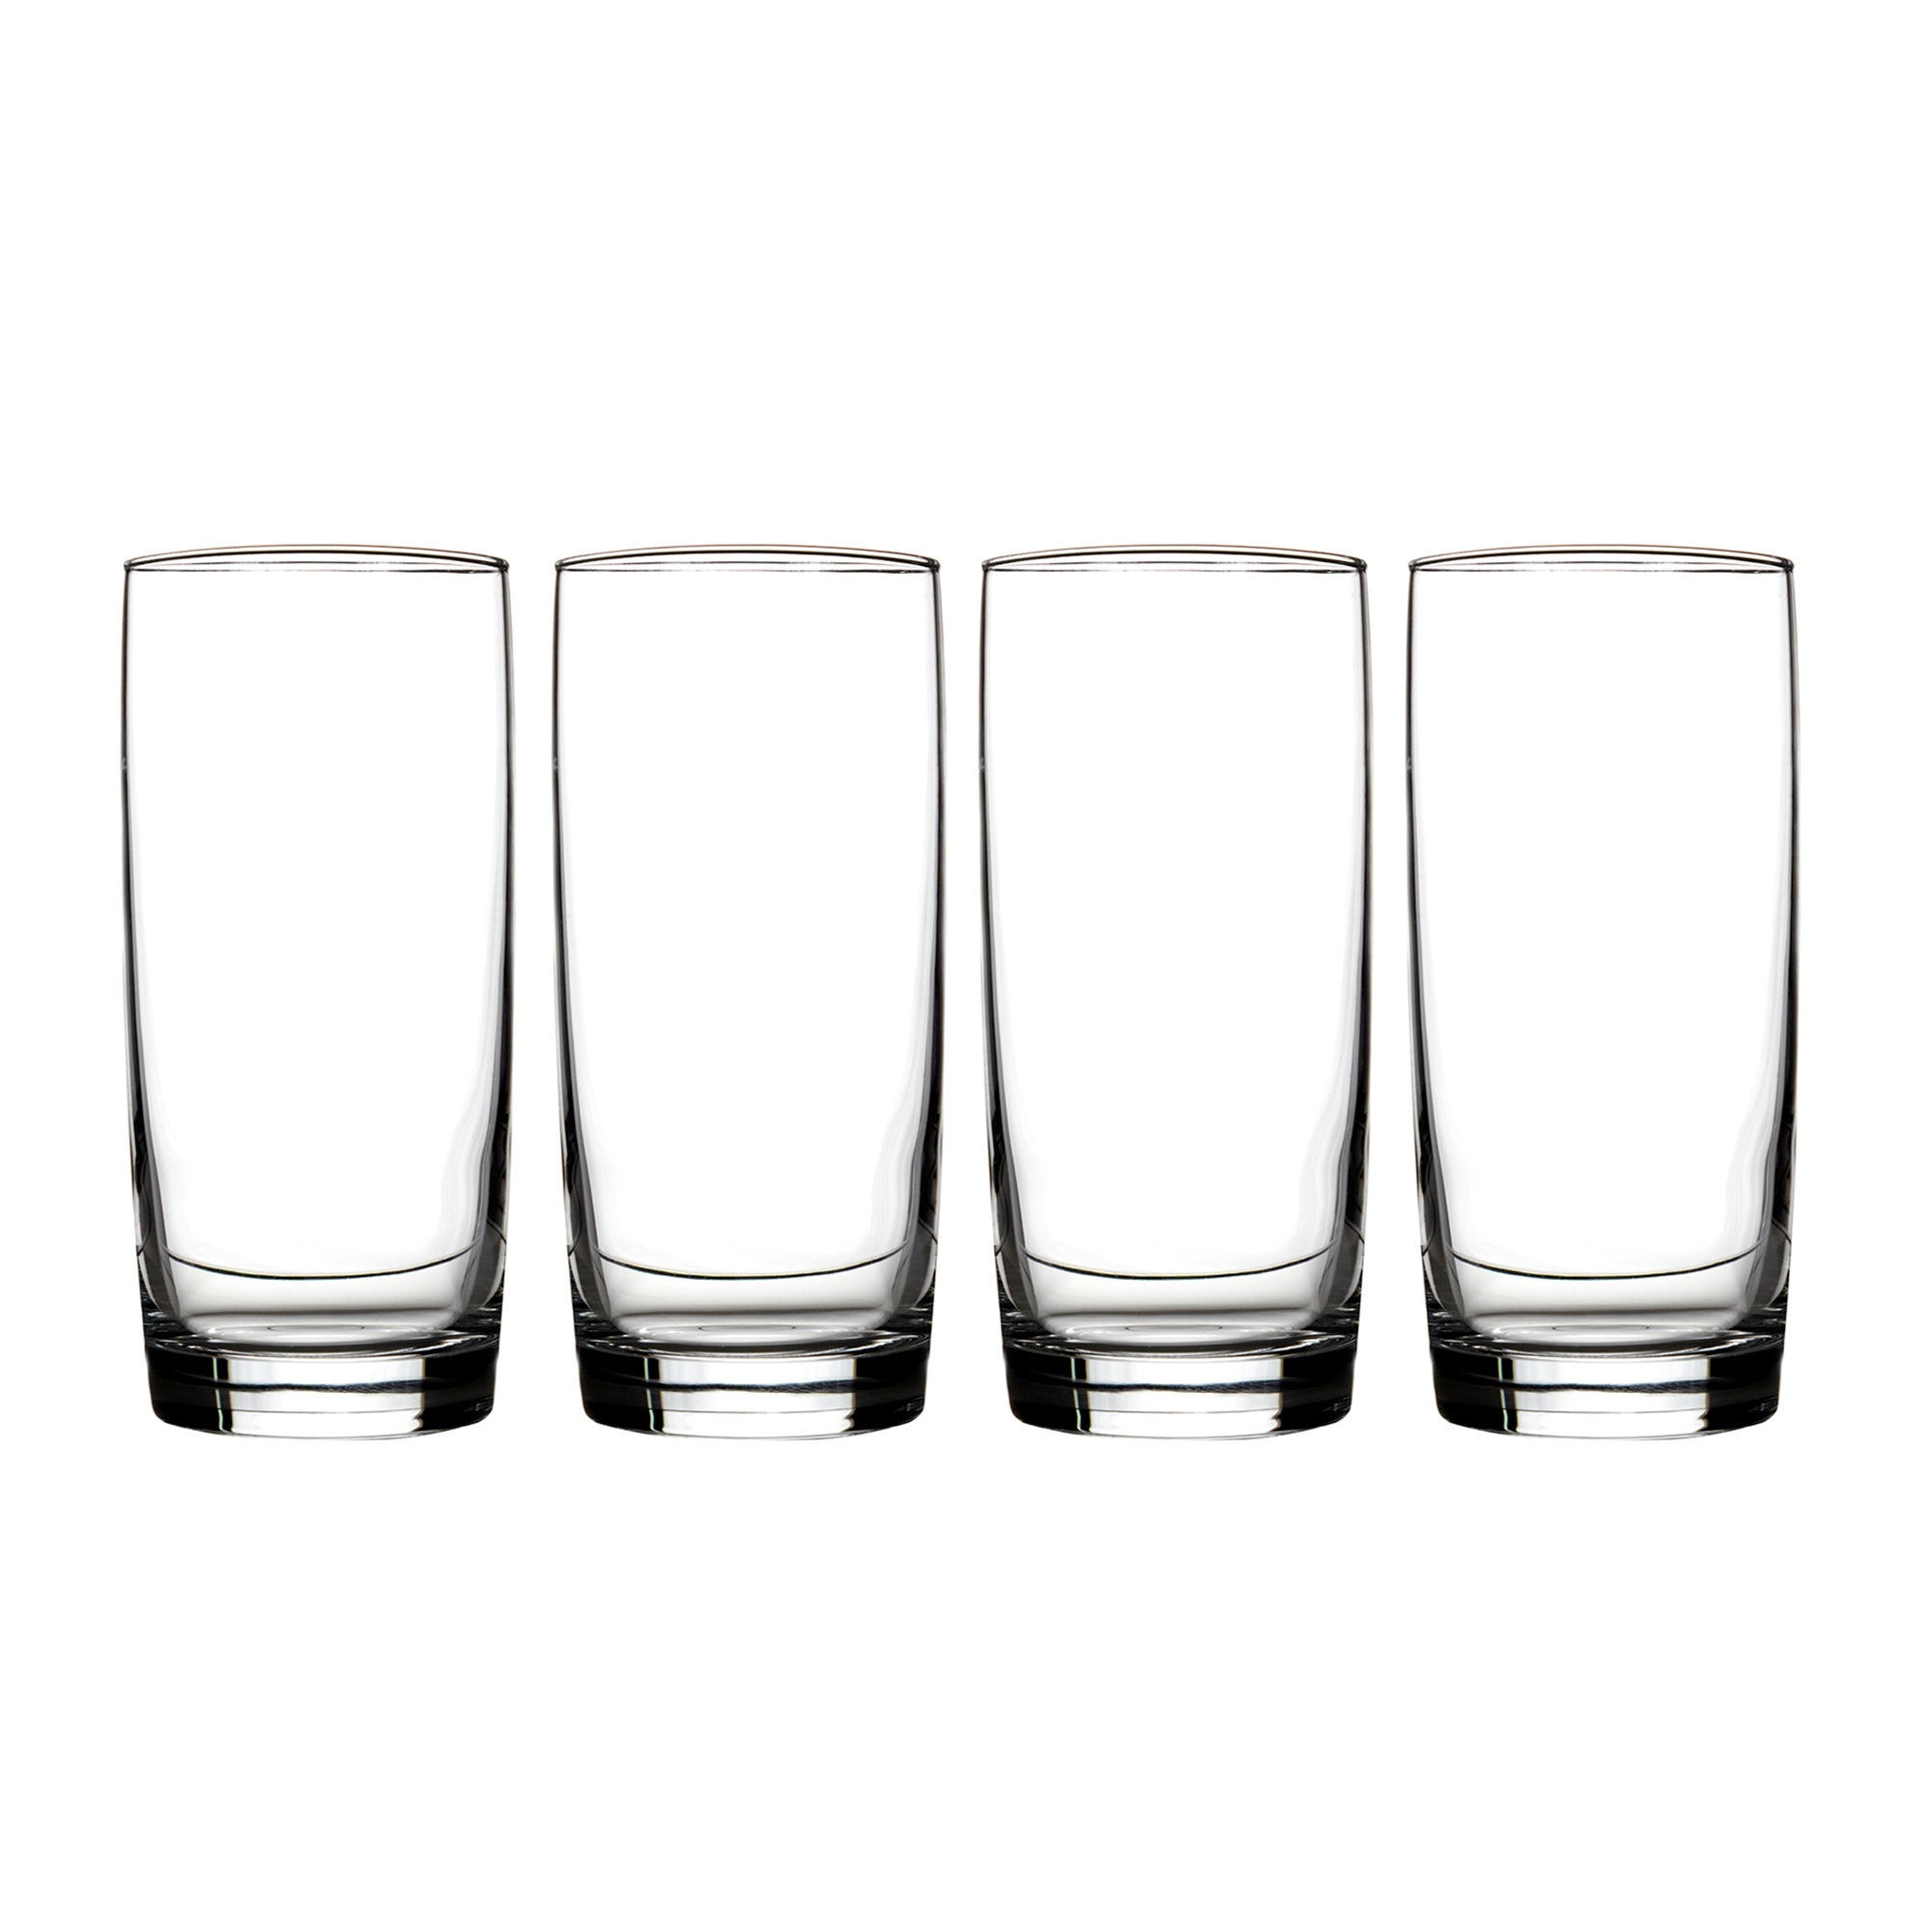 4 Pausa Endessa Hi-Ball Glasses